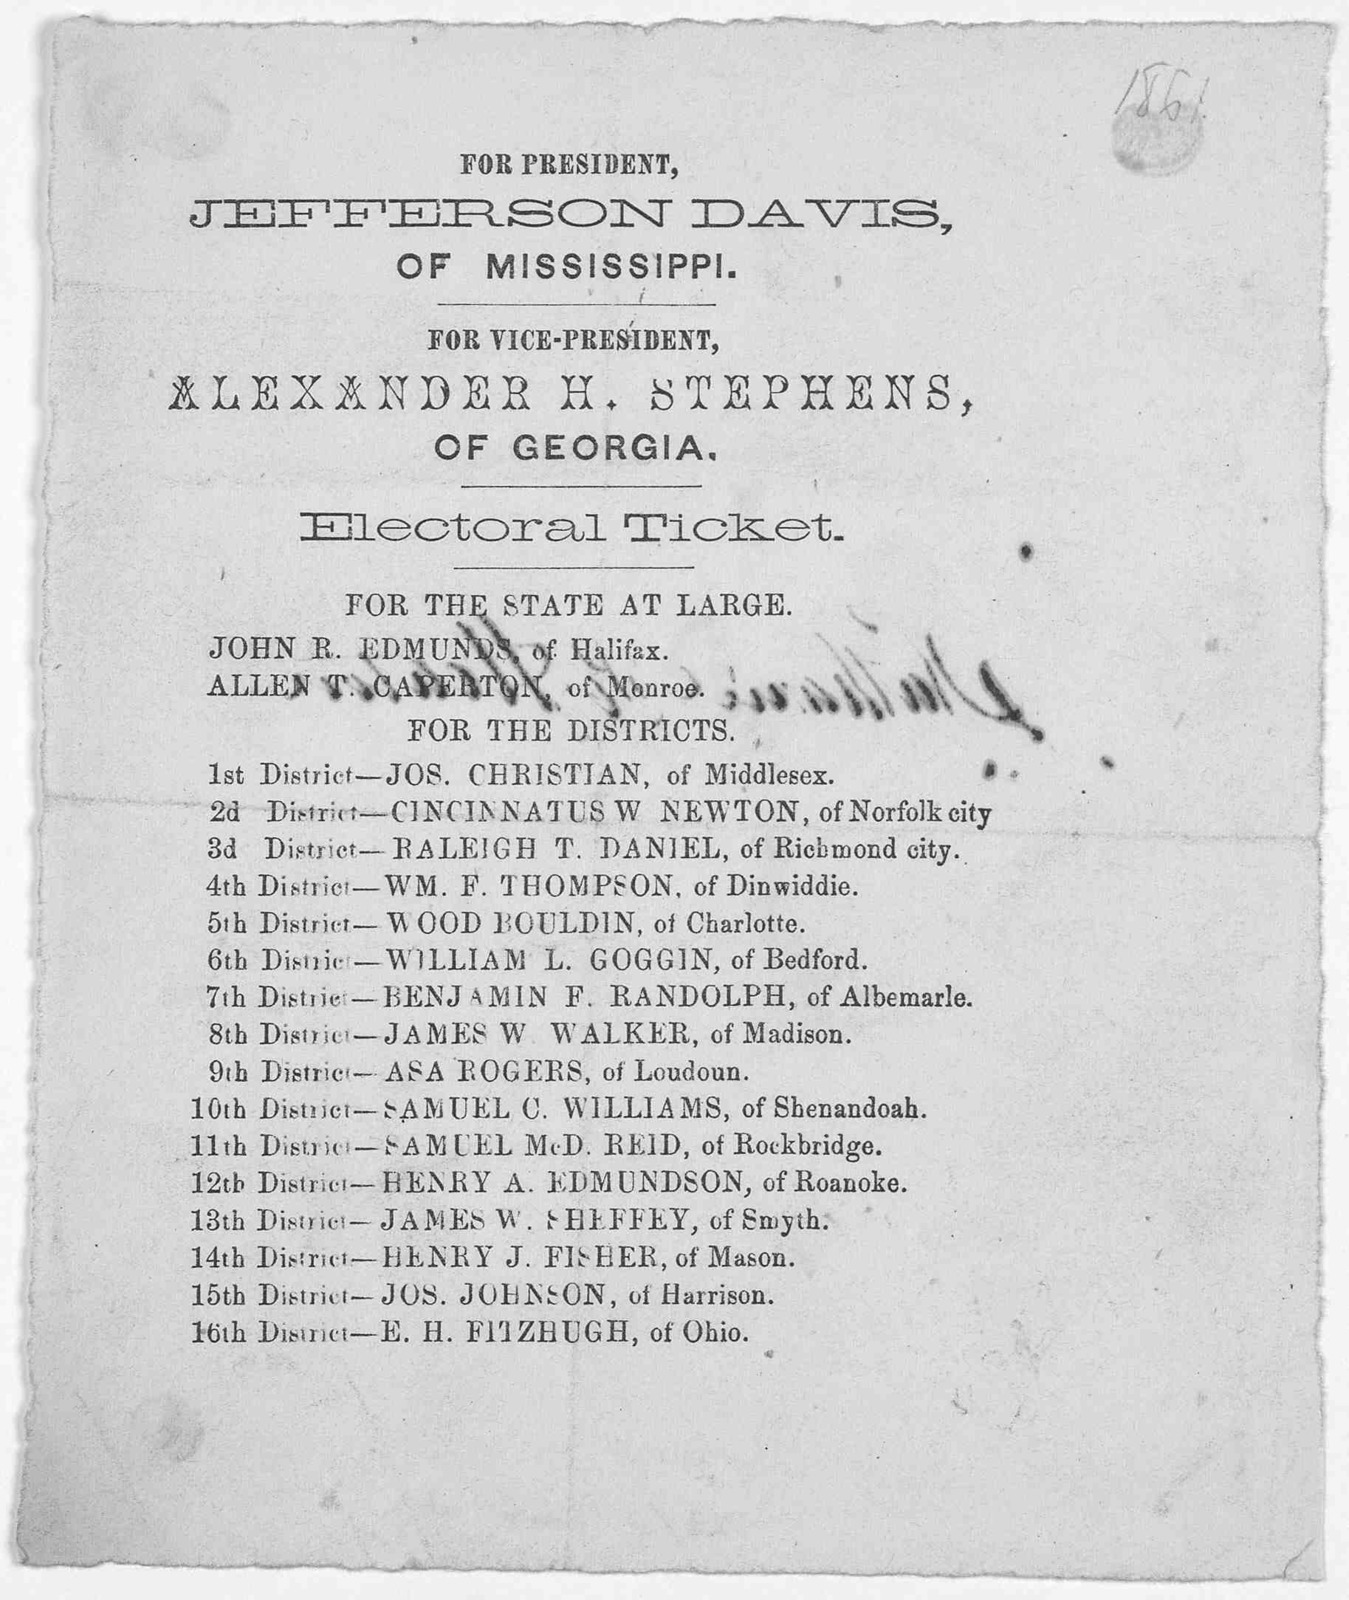 For President Jefferson Davis, of Mississippi. For Vice-President, Alexandria H. Stephens, of Georgia. Electoral ticket. For the state at large. [Virginia electoral ticket] [1861].